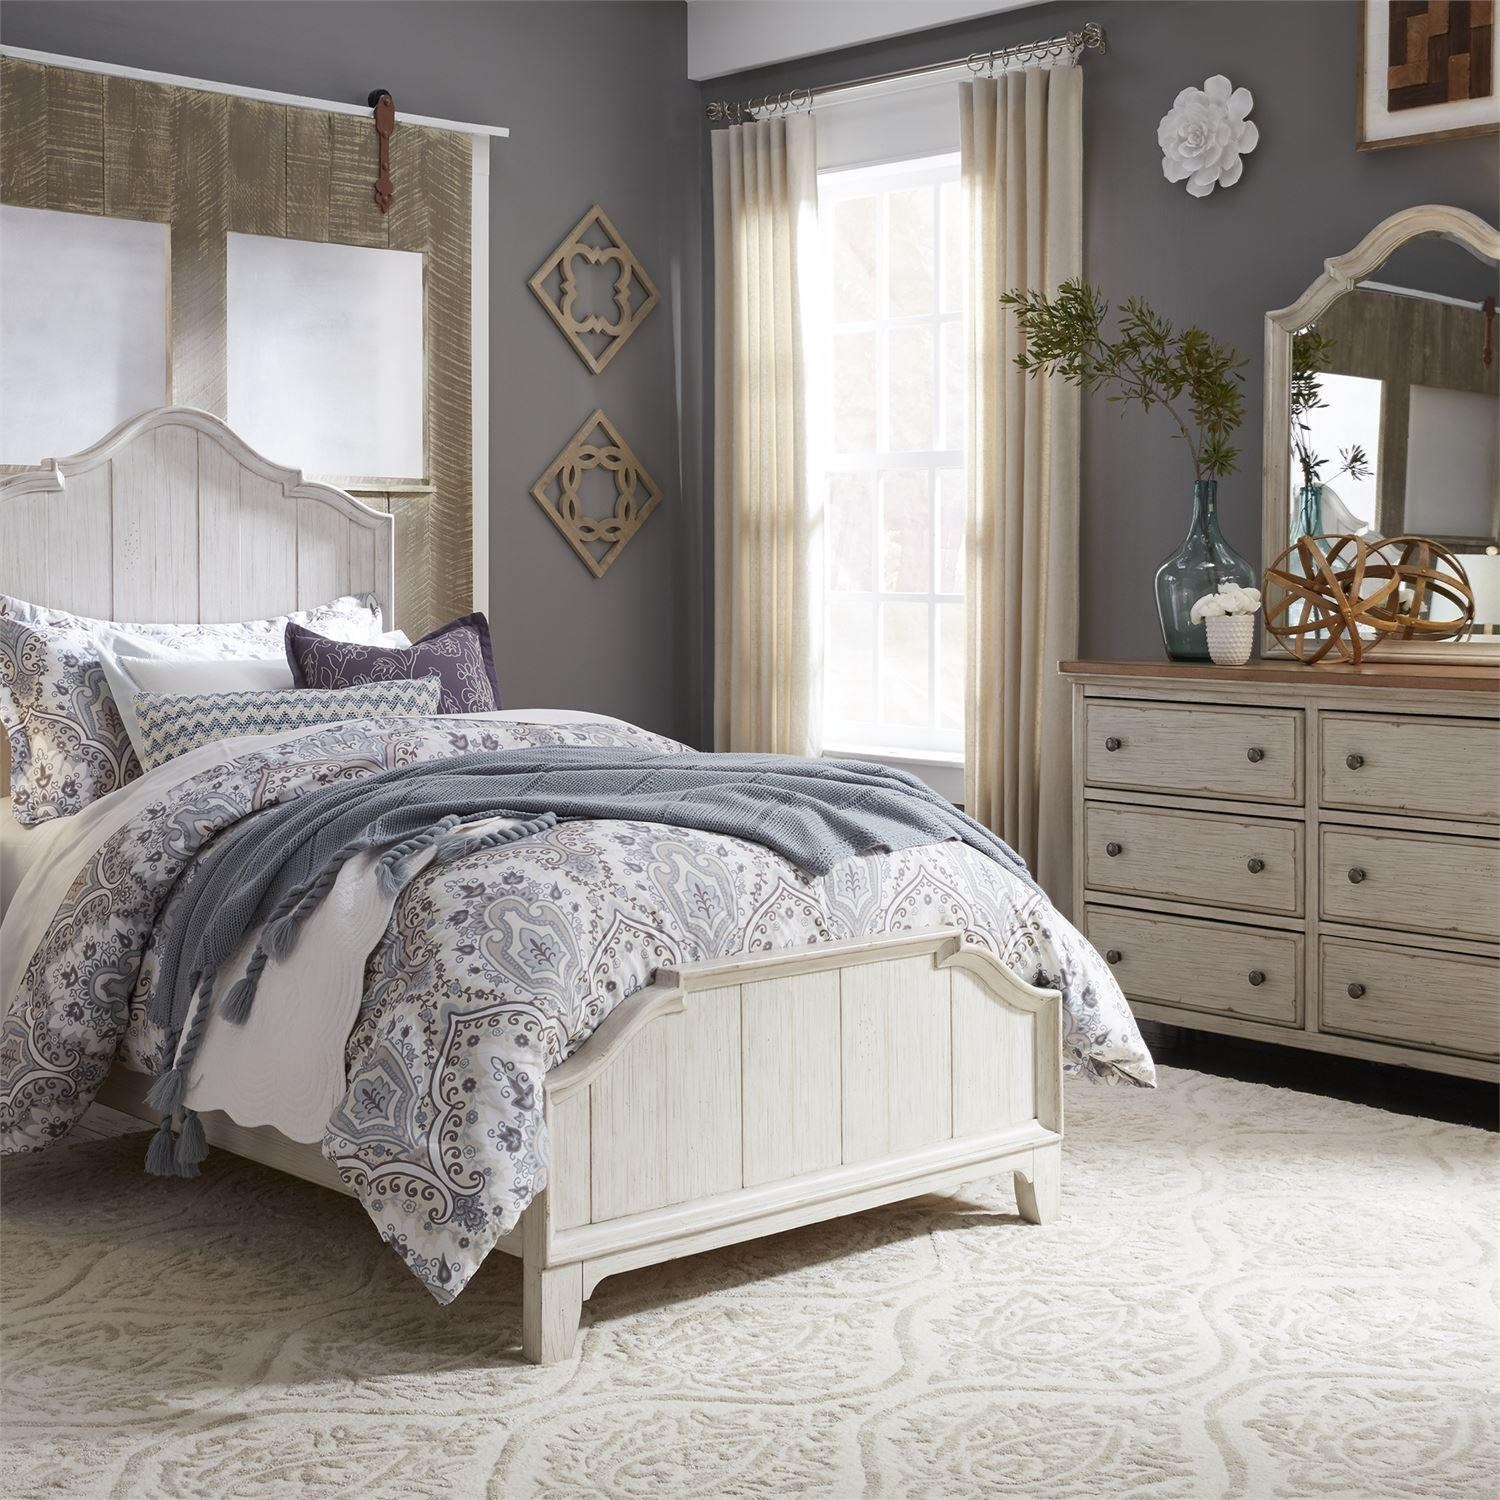 Farmhouse Reimagined Full Panel Bed, Dresser & Mirror by Liberty Furniture at Northeast Factory Direct